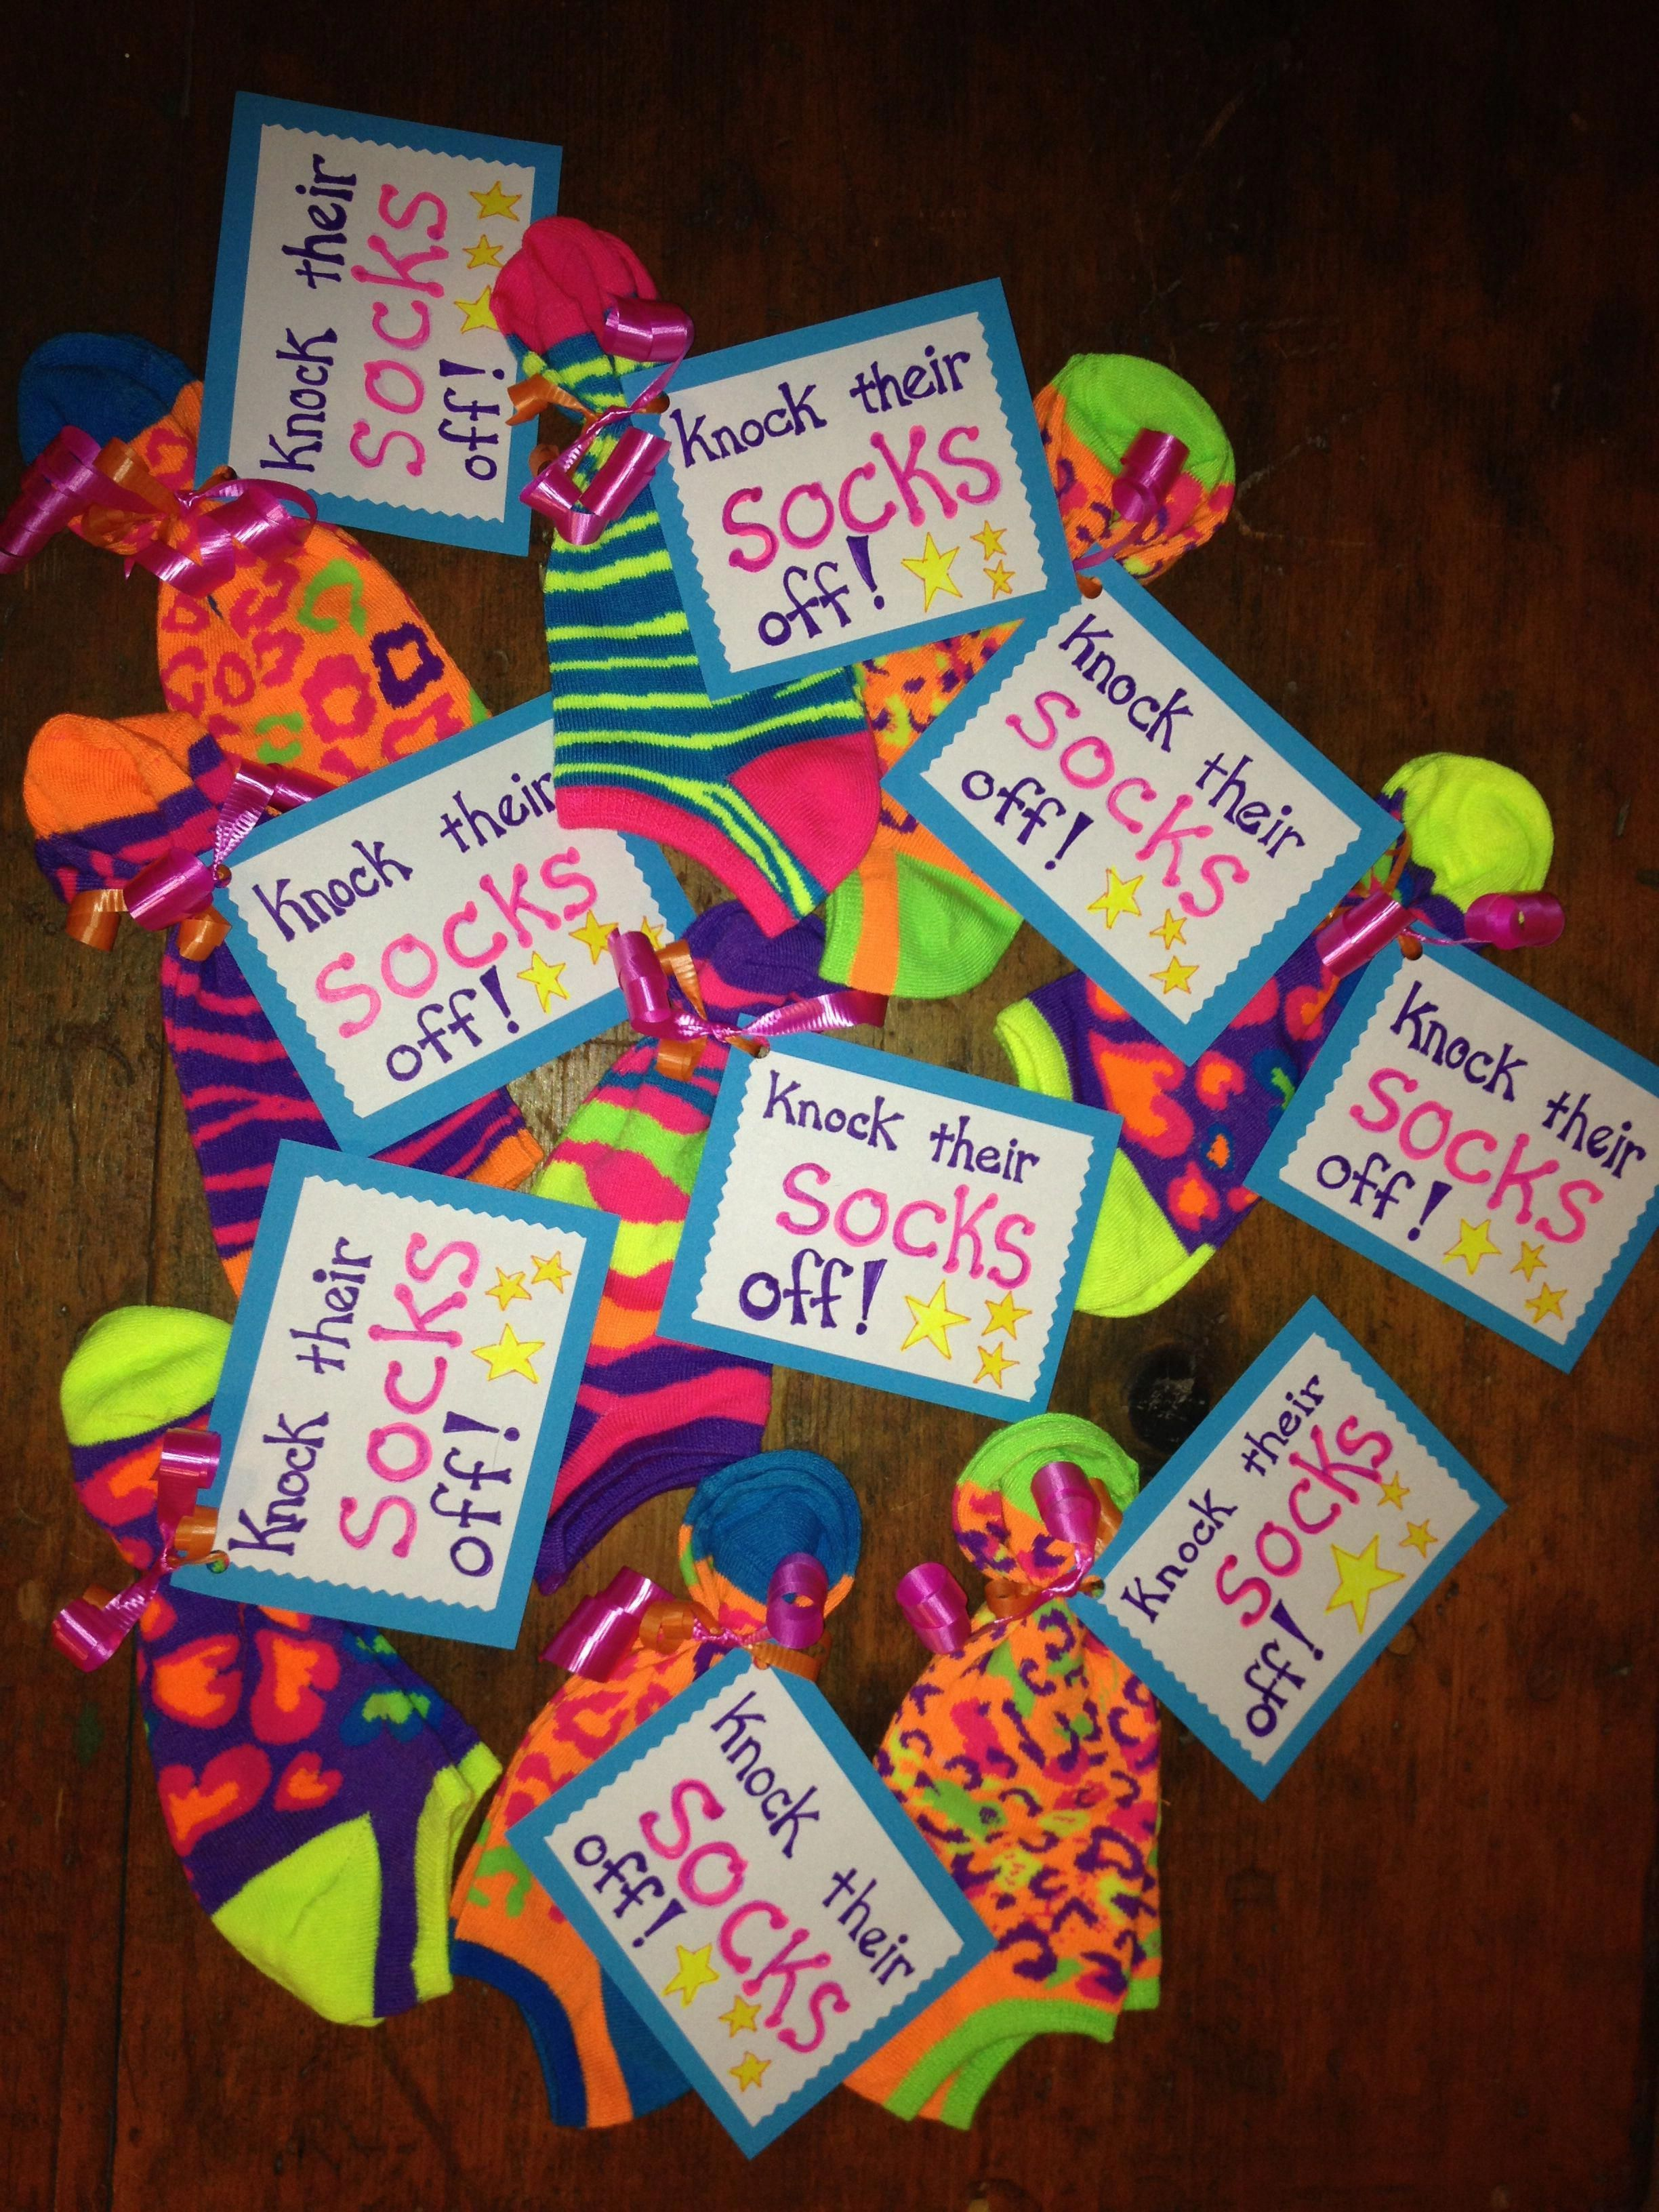 Knock Their Socks Off One Of The Items In Gift Bags For Traveling Dance Team Baseballsocks In 2020 Cheerleading Gifts Dance Team Gifts Good Luck Gifts